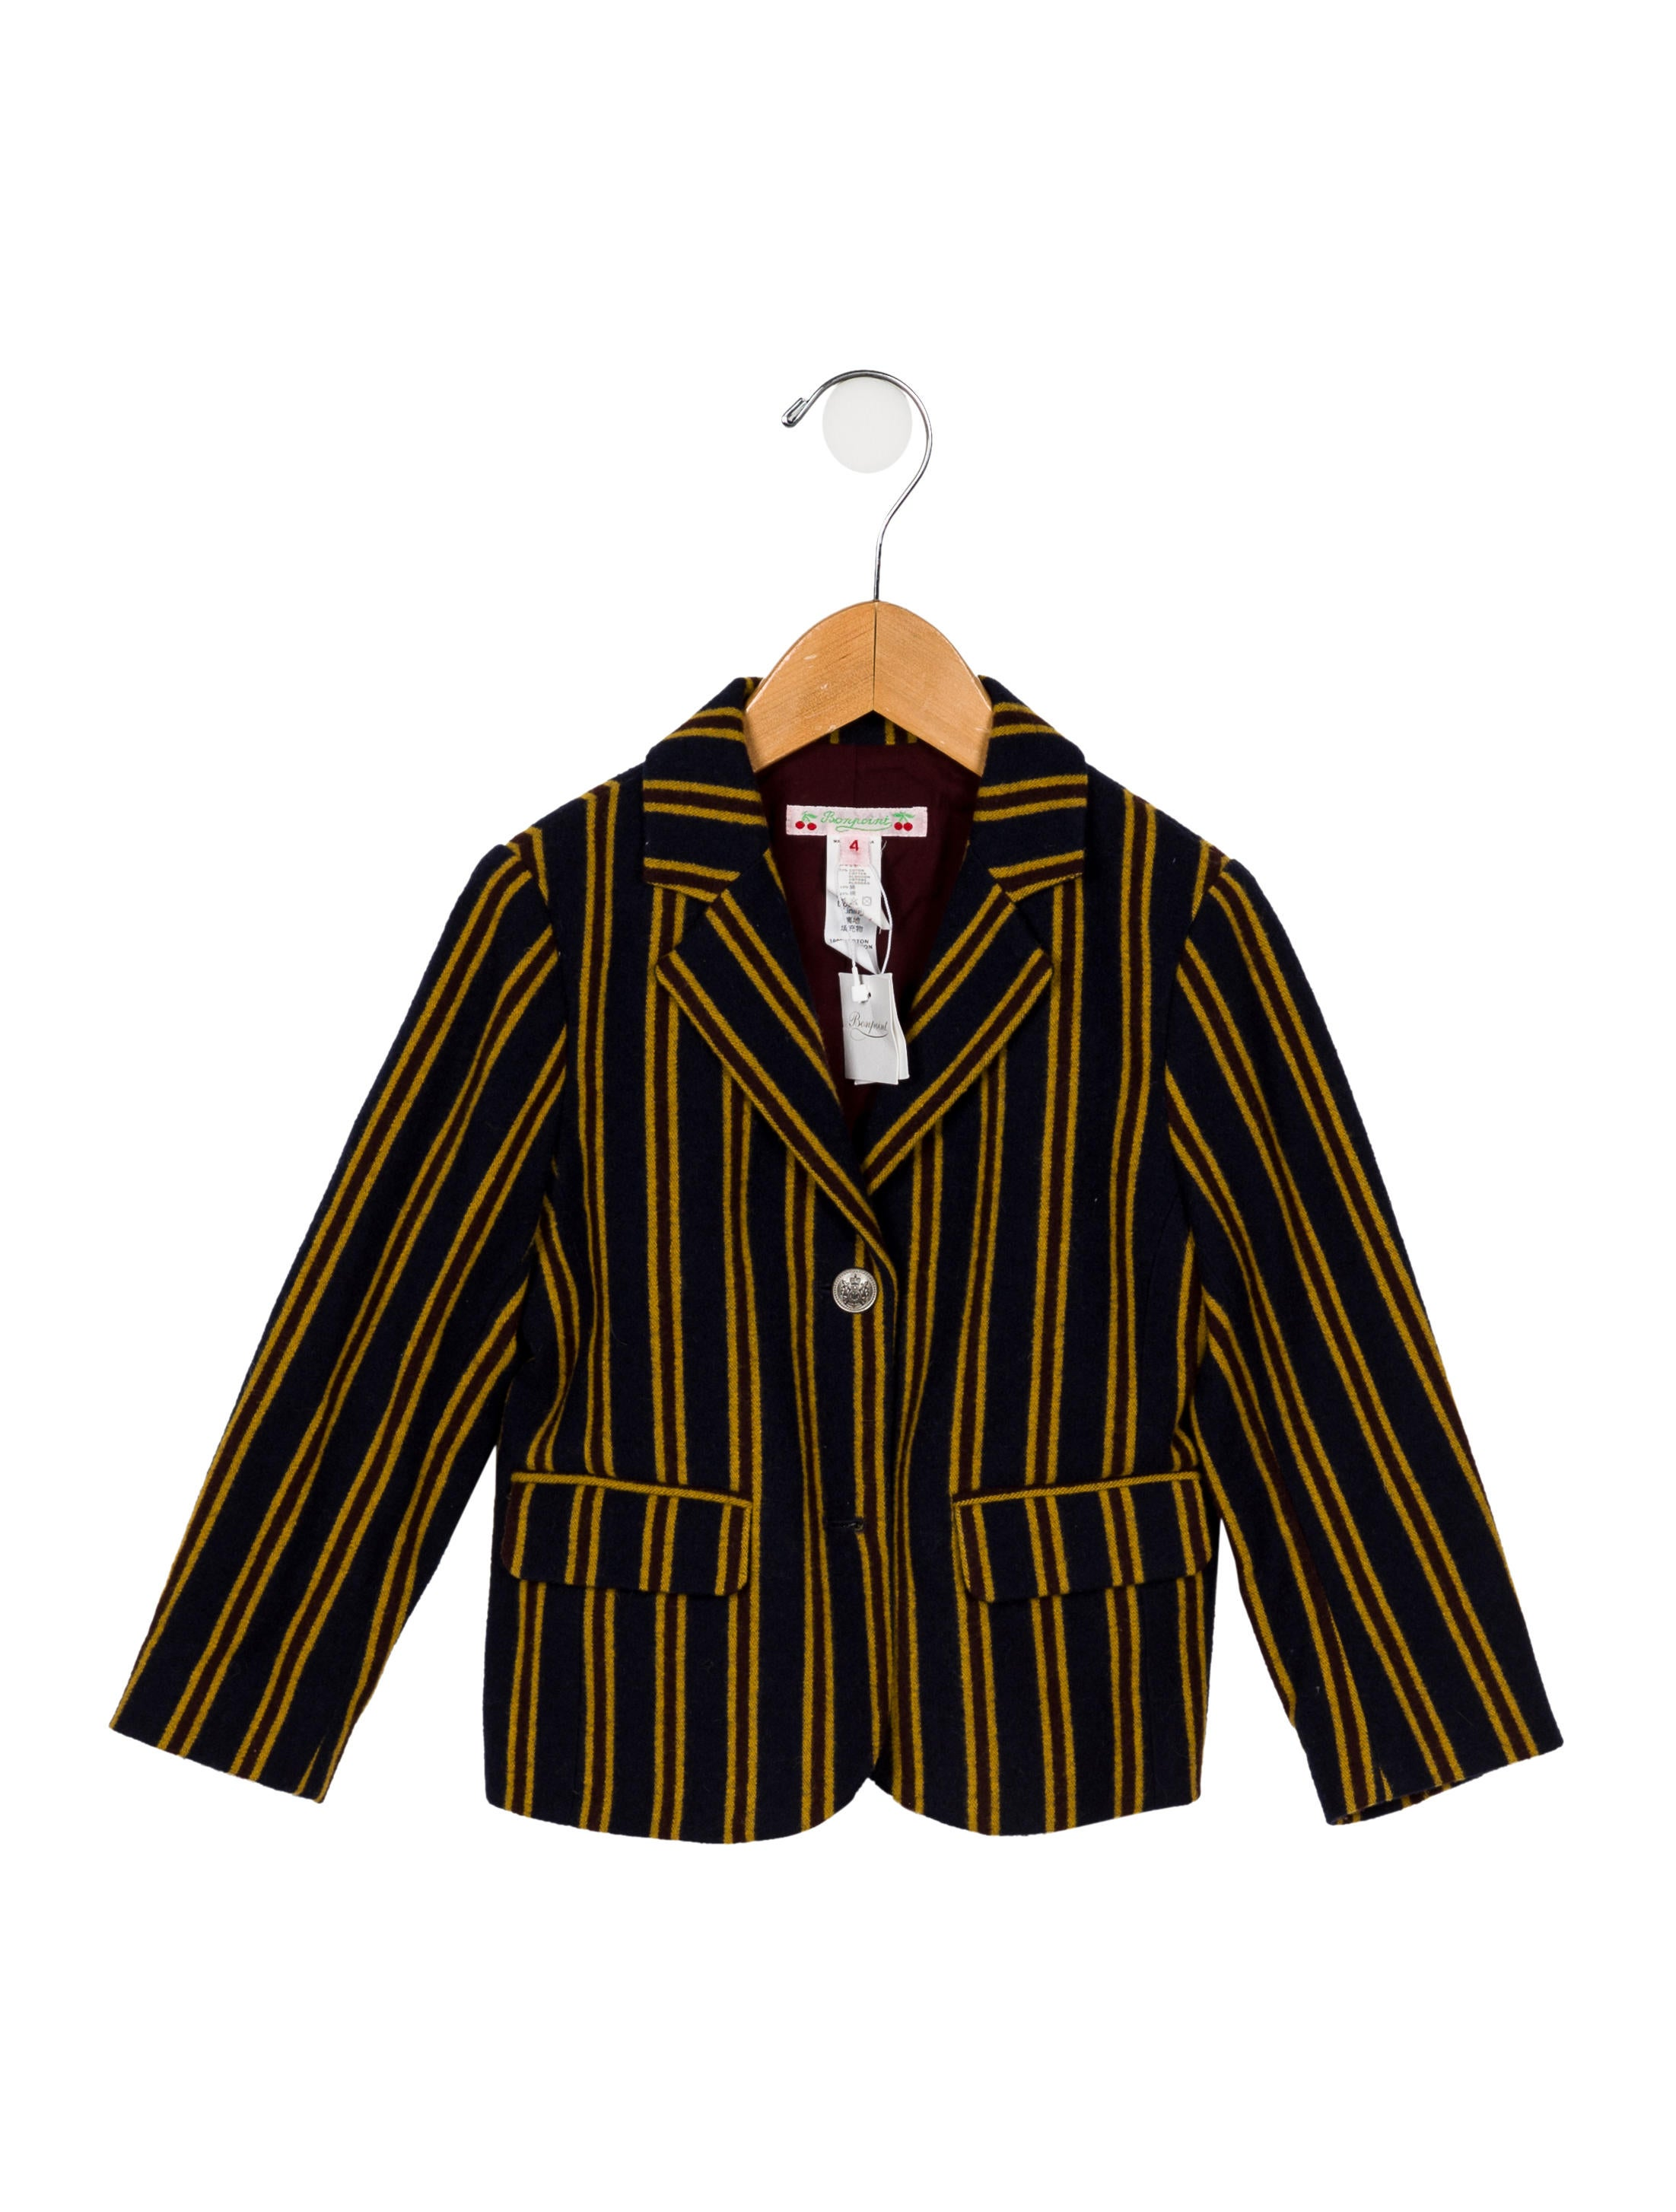 5a04a4a8457c Bonpoint Boys  Wool Striped Blazer w  Tags - Boys - WBONP37858